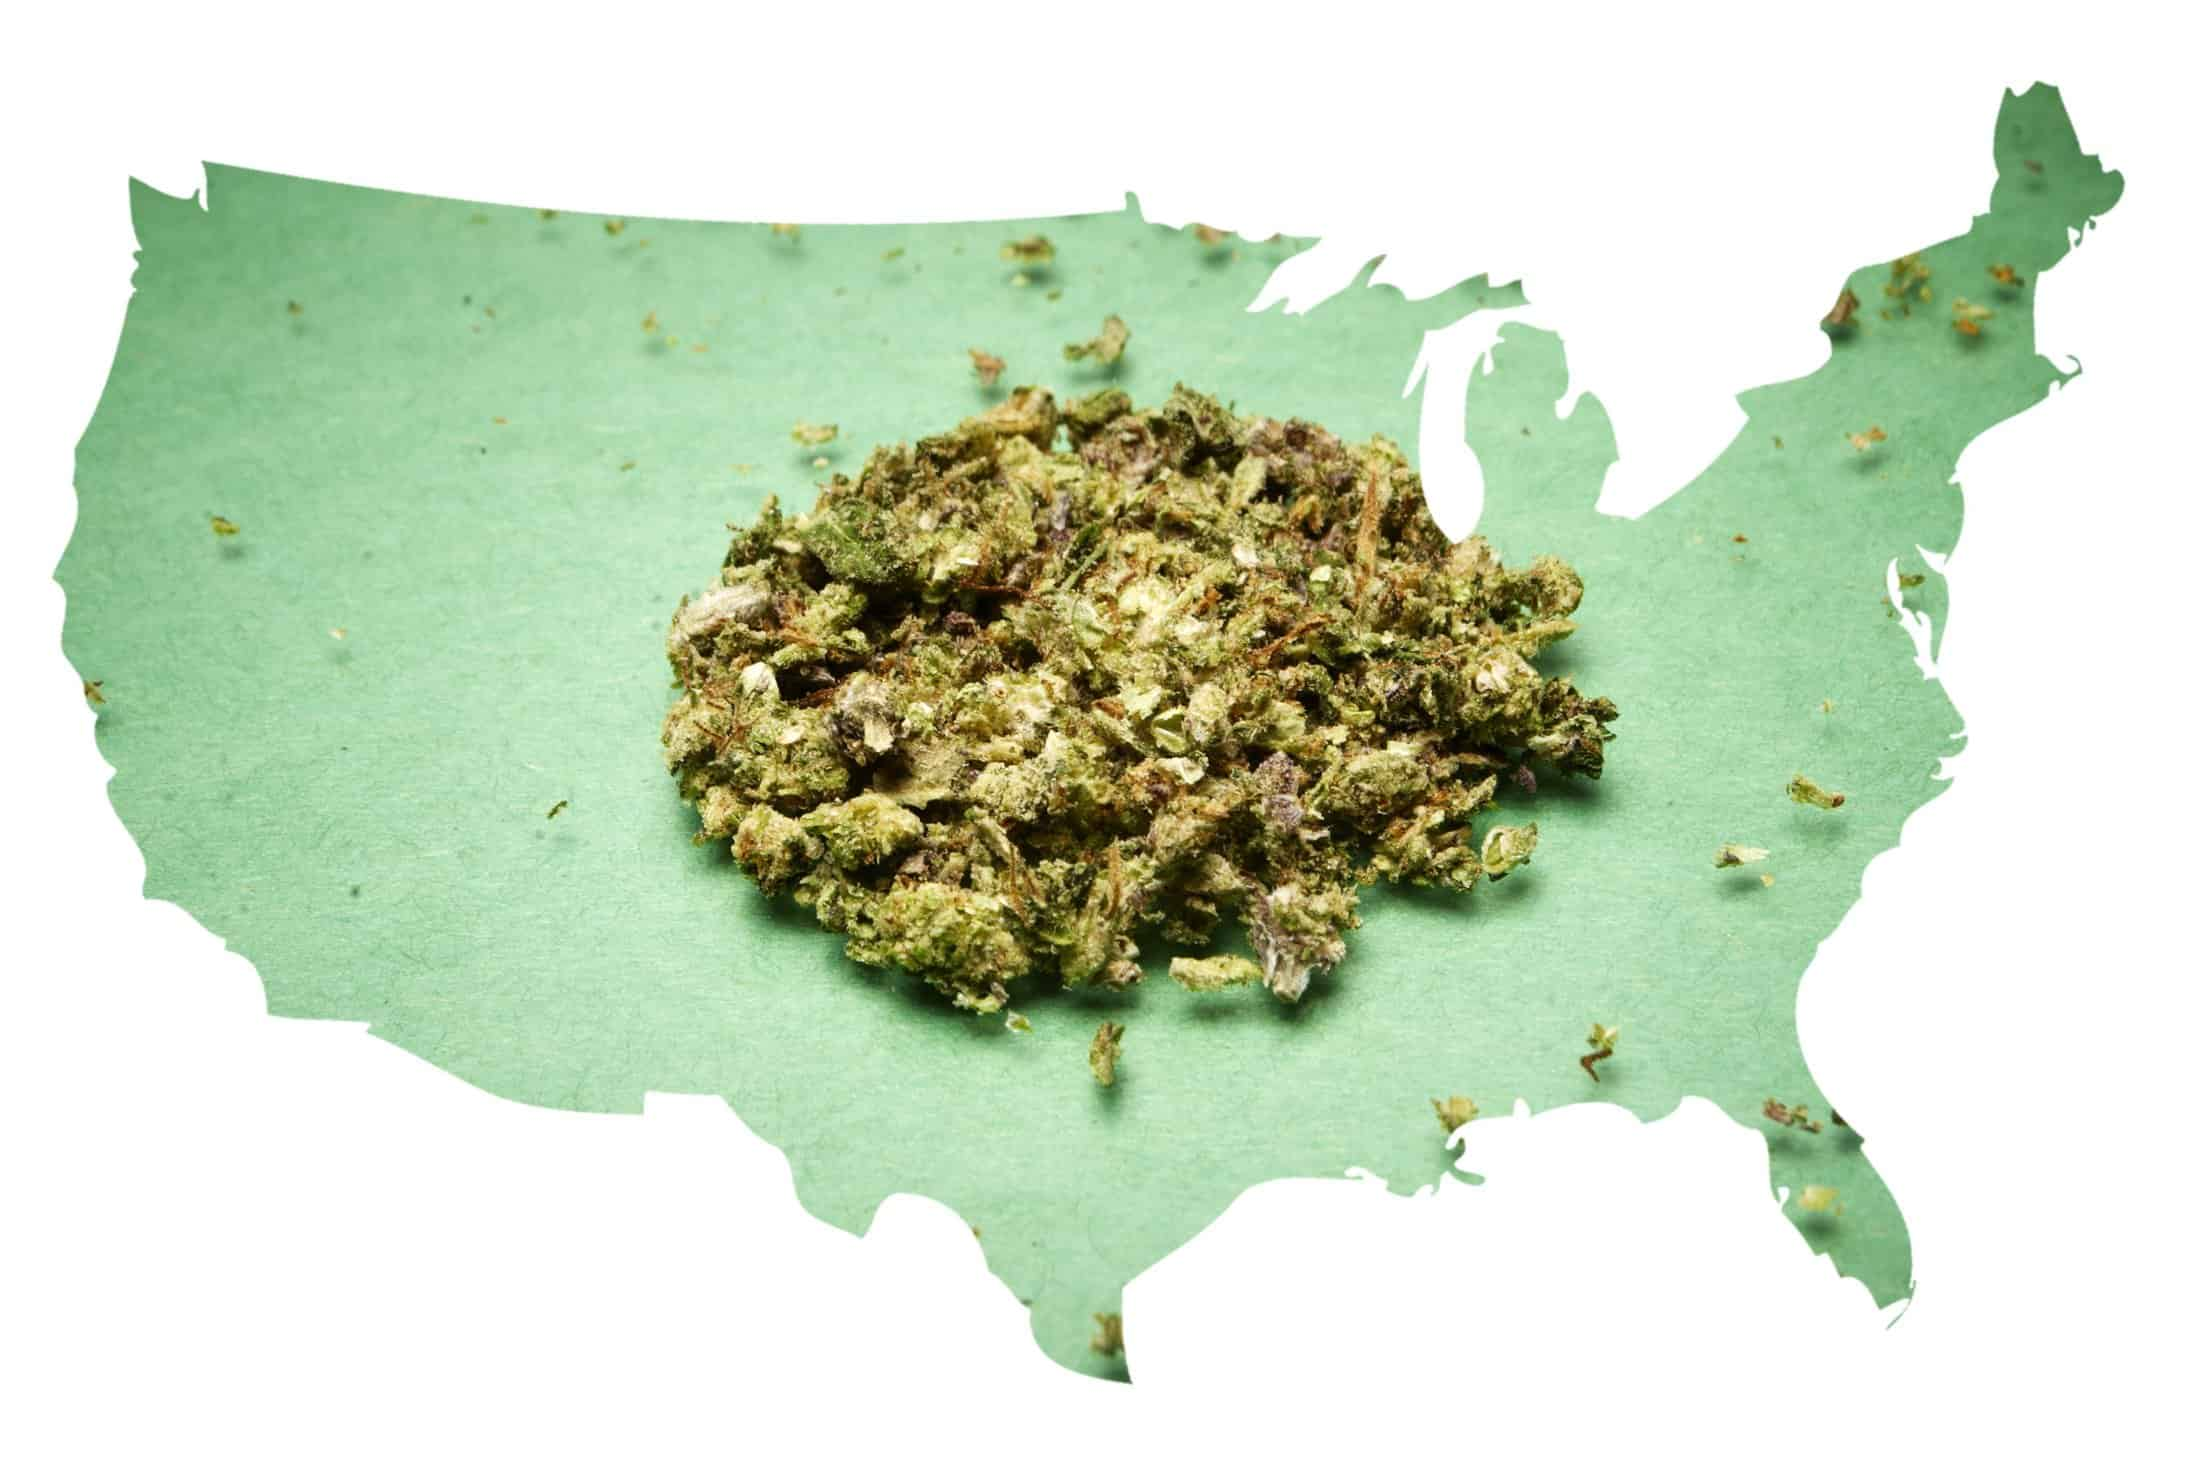 Election Results 2018: Marijuana on the Ballot. US map with weed on it.